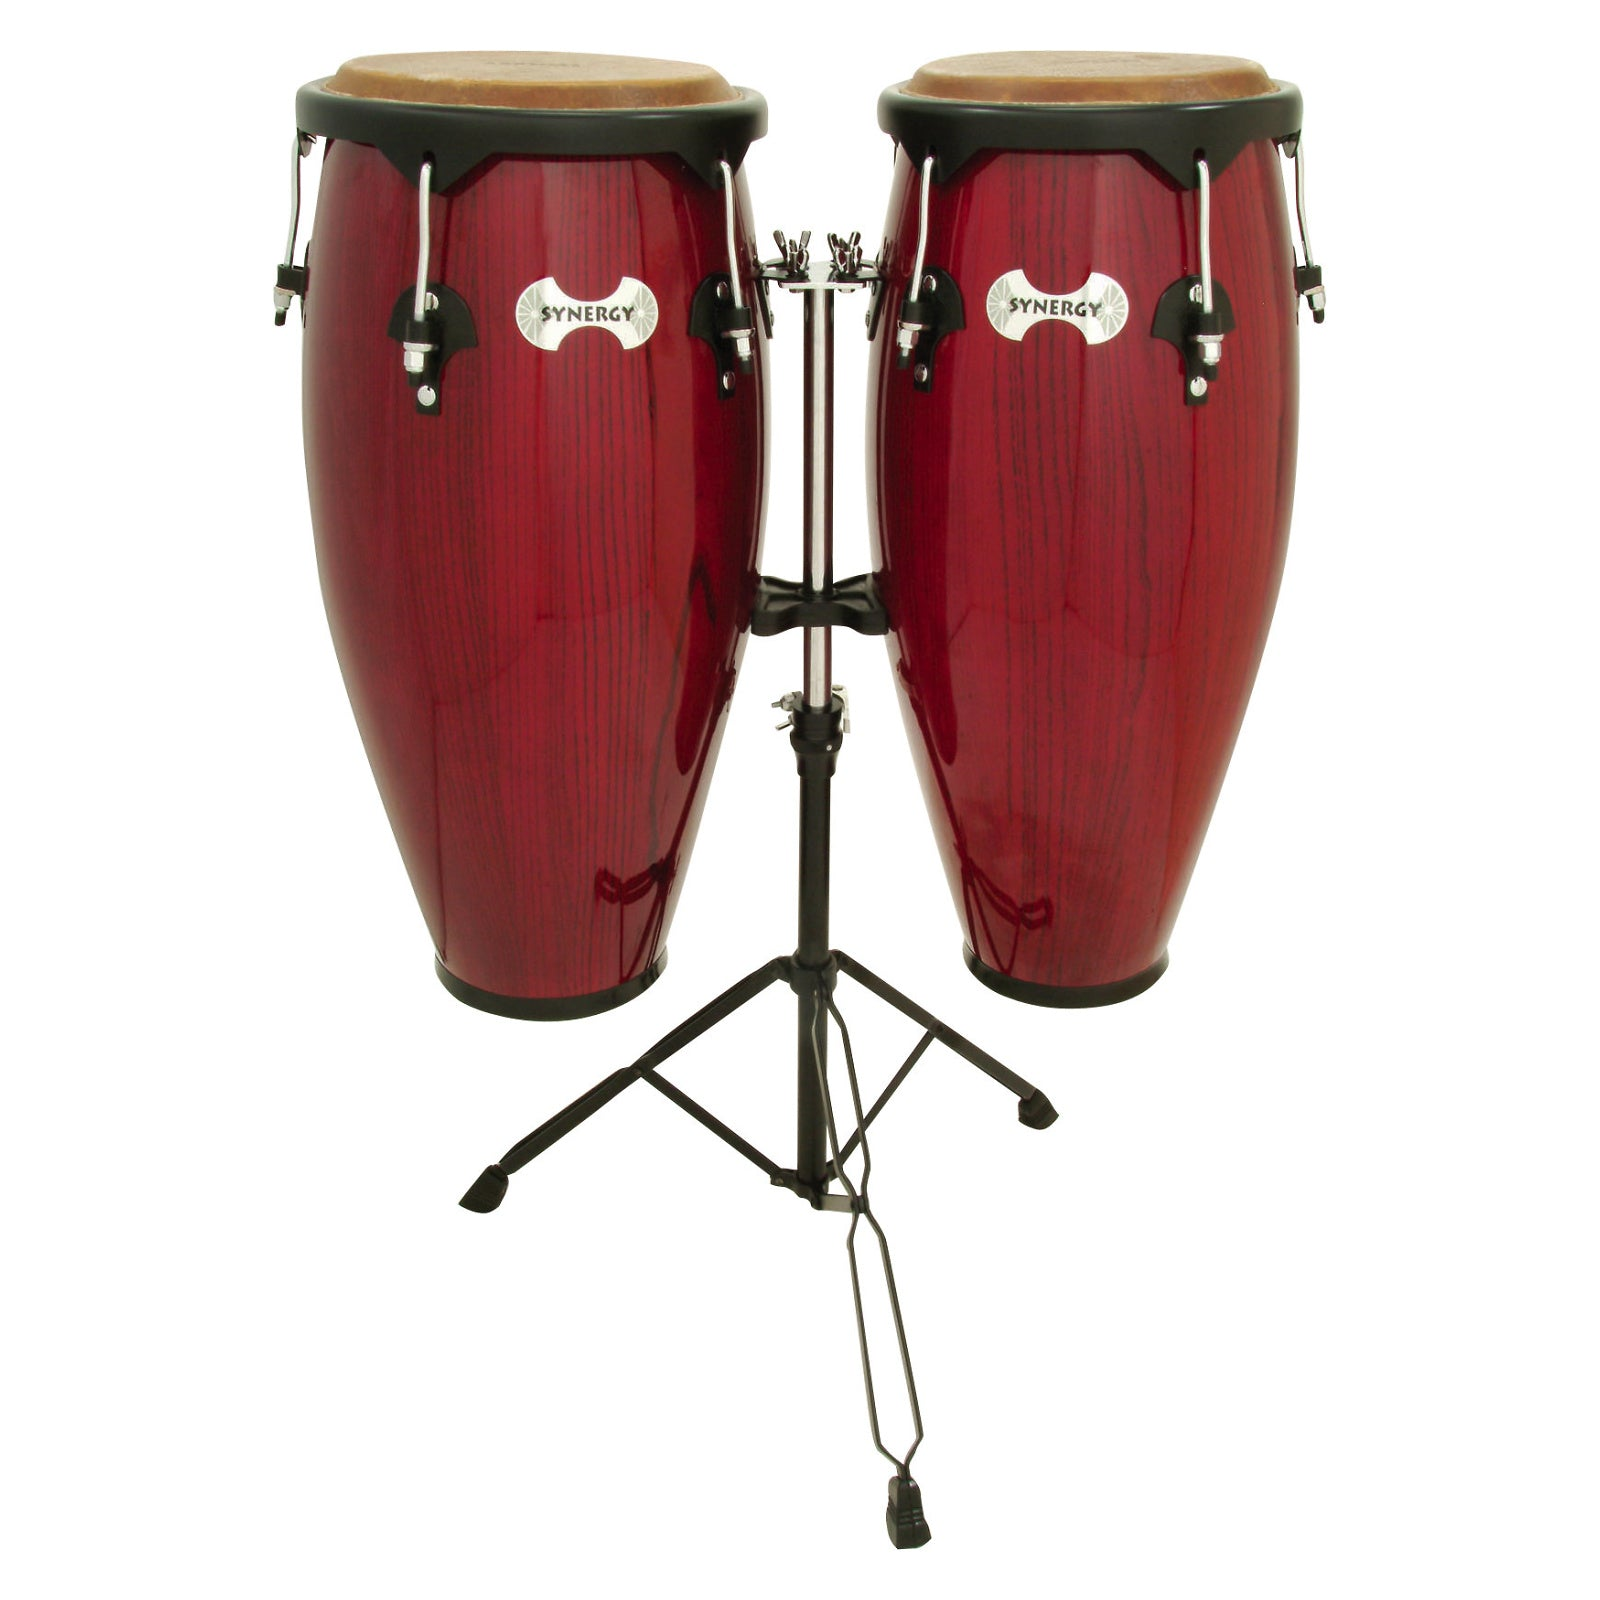 Toca Synergy Congas (with Stand), Rio Red